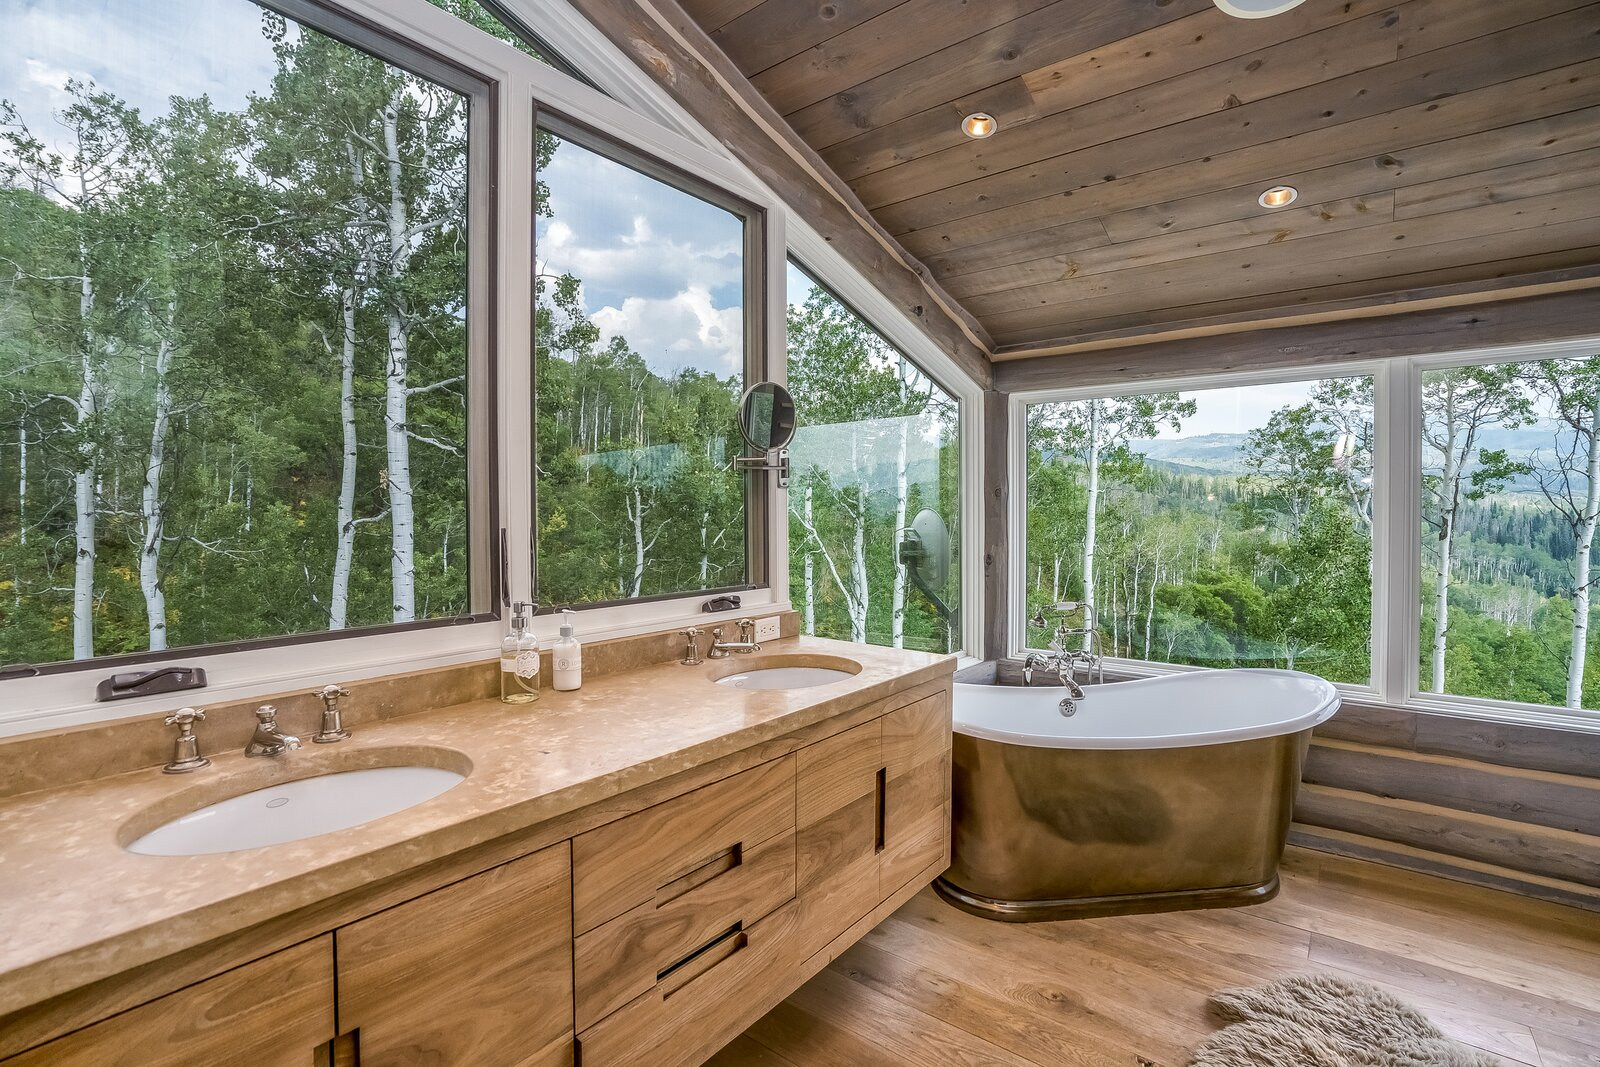 Bath Room, Stone Counter, Freestanding Tub, Medium Hardwood Floor, Drop In Sink, and Recessed Lighting The bathroom located just behind the sleeping space features picture windows that open up views to aspen tree grove.  Photo 8 of 16 in An Updated Log Cabin–Style Home in Colorado Seeks $2.4M